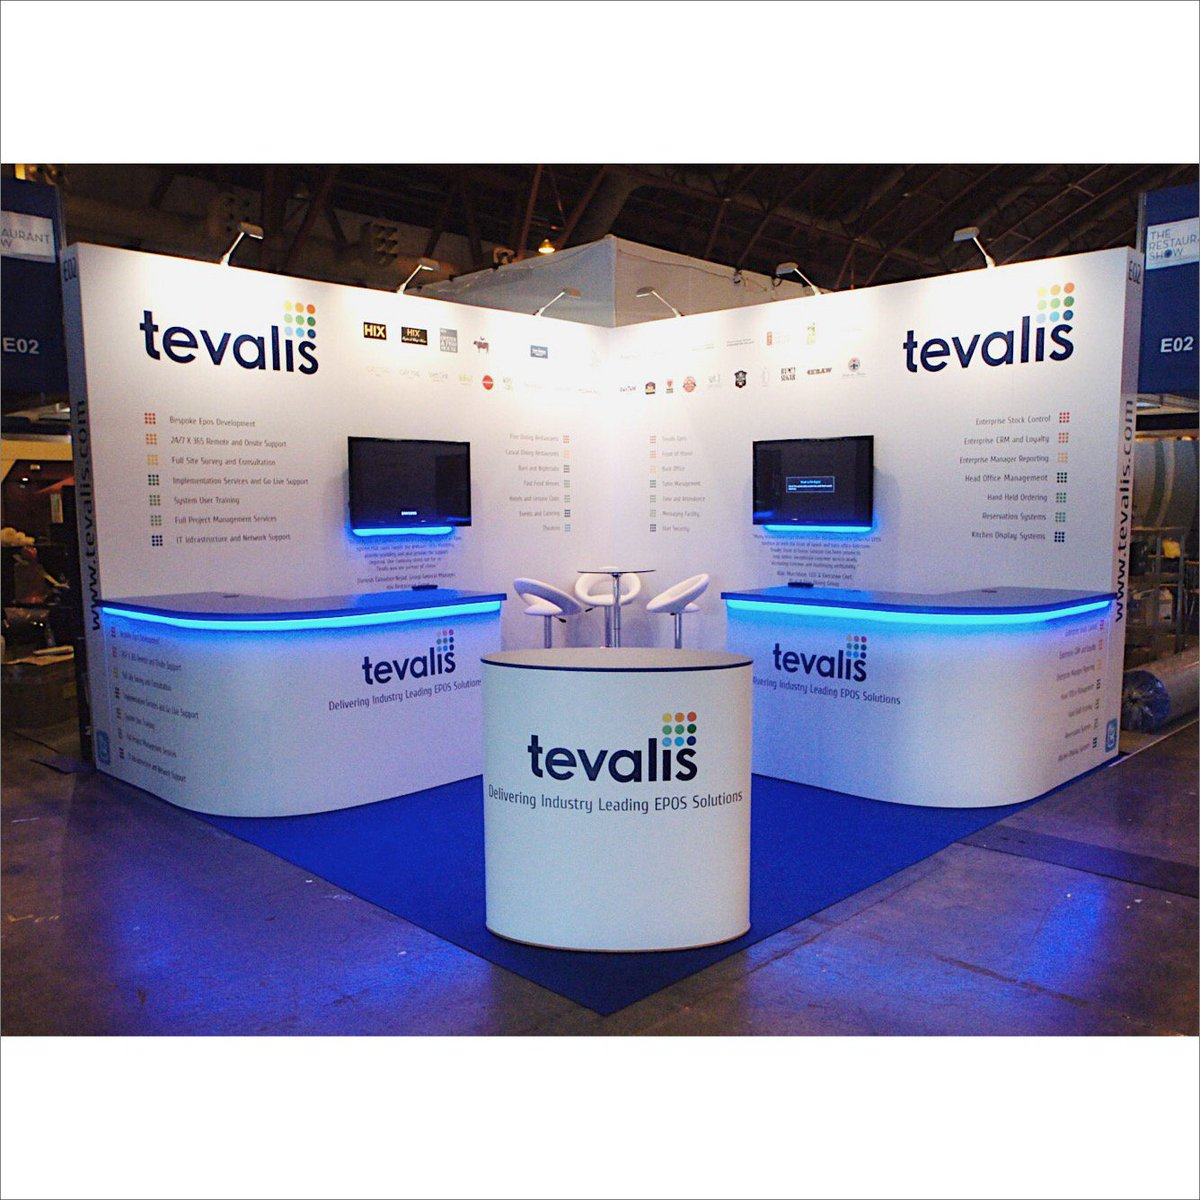 Expo Exhibition Stands Uk : Modular exhibition stands u advance